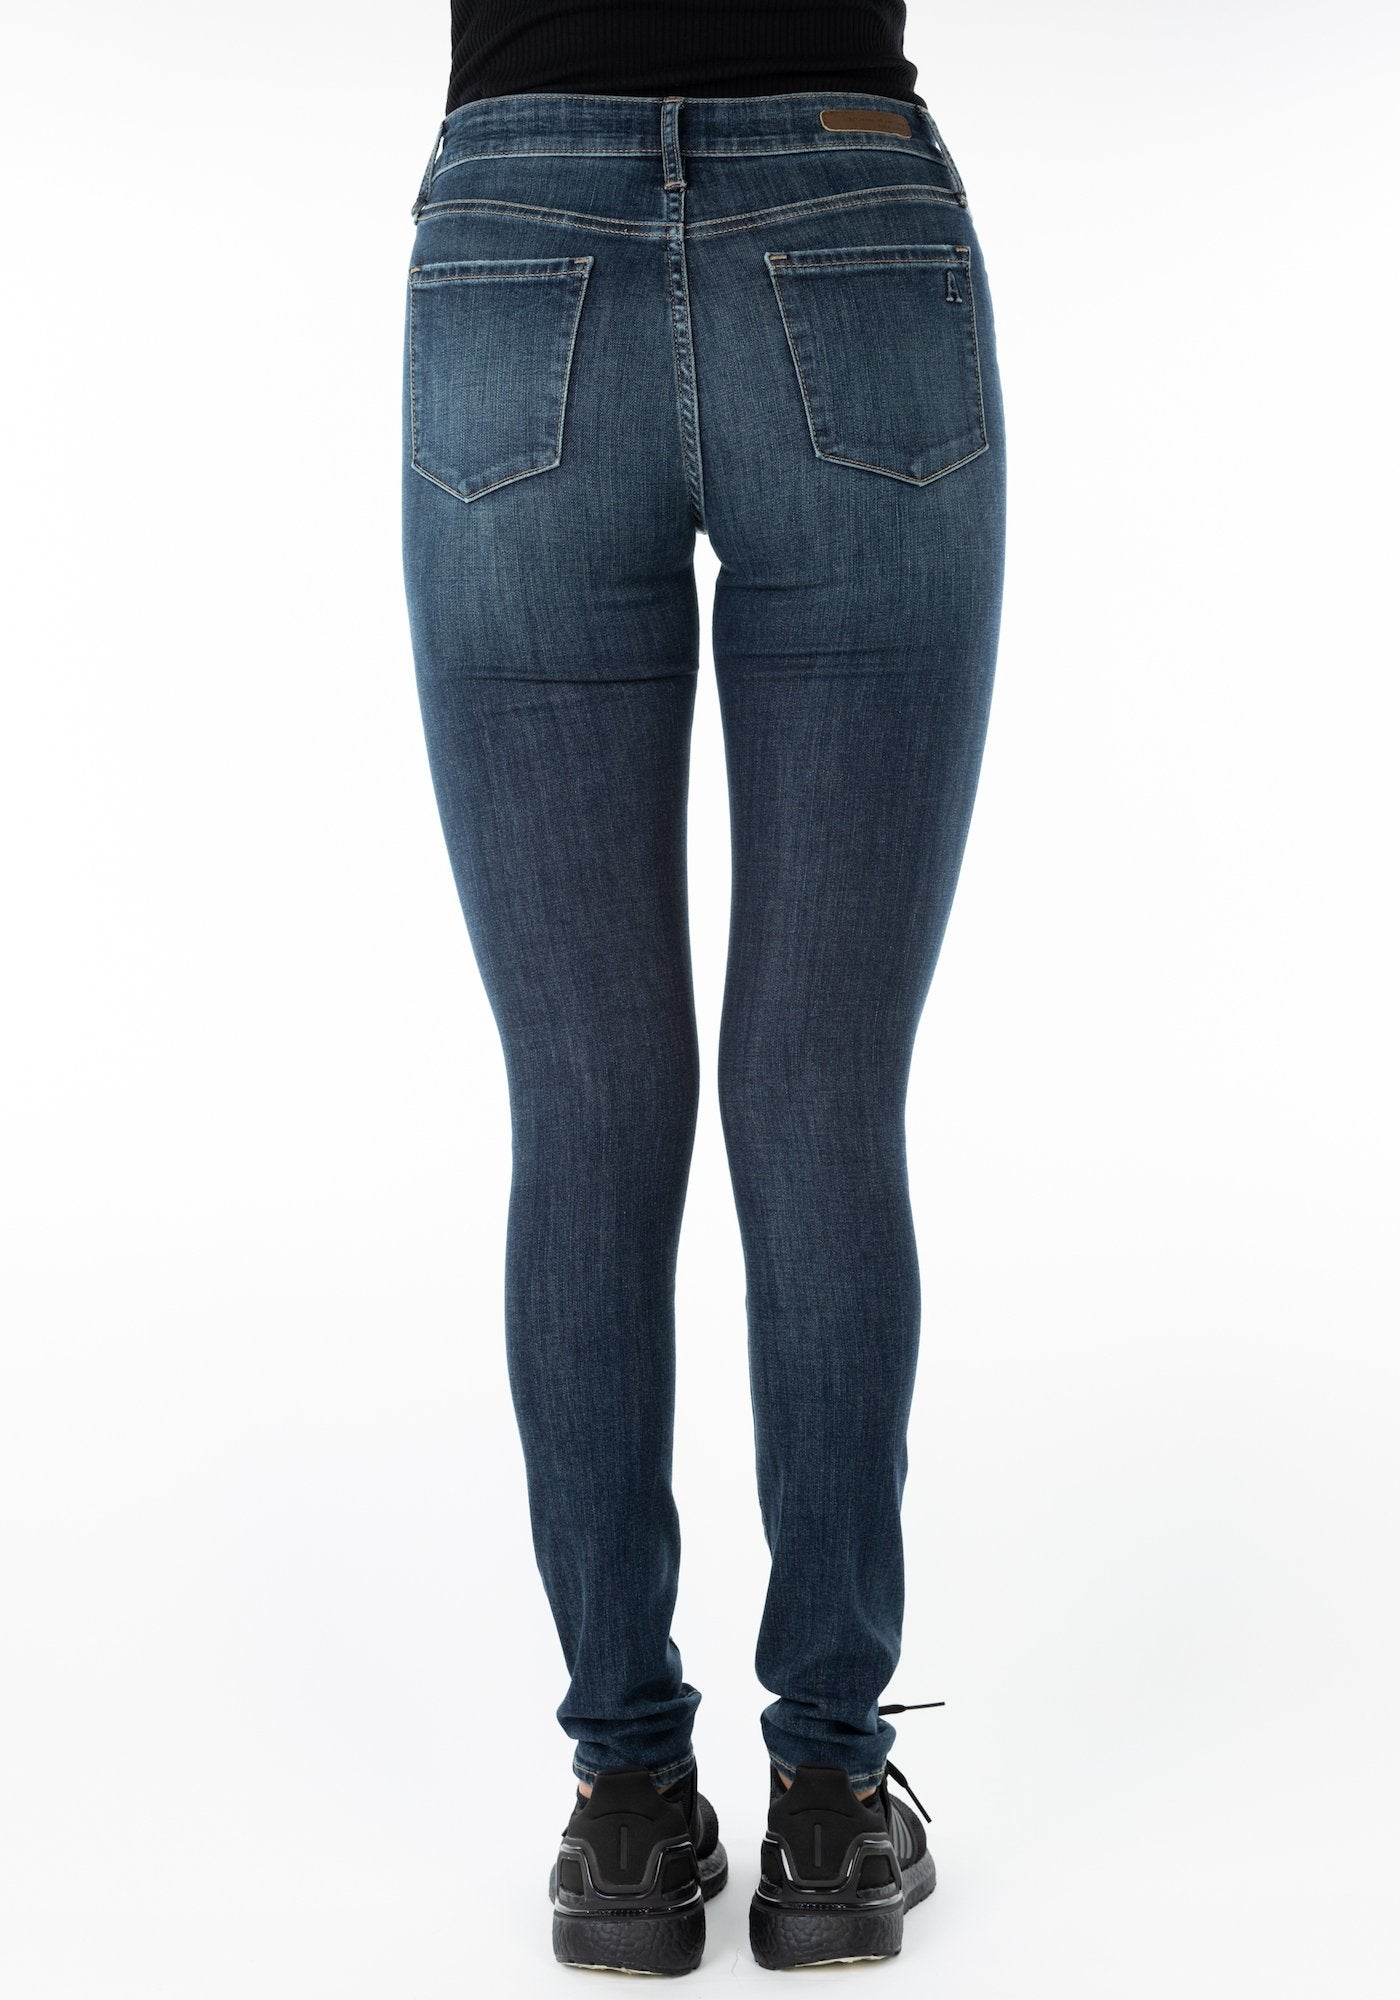 The Mya Classic Skinny Jeans by Articles of Society - Adrian